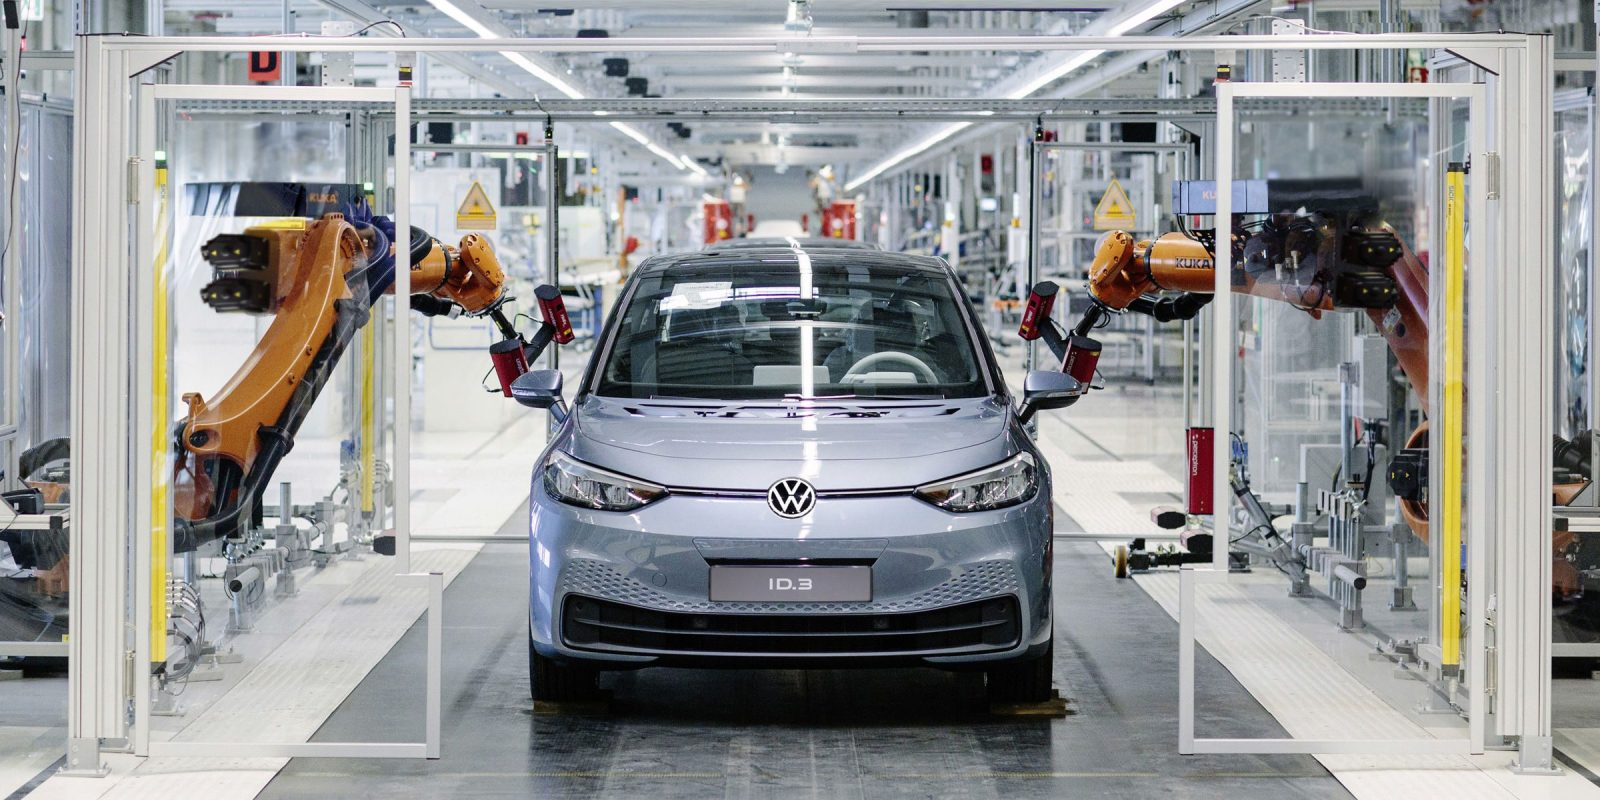 VW starts production of ID.3 electric car, converts factory to EV production